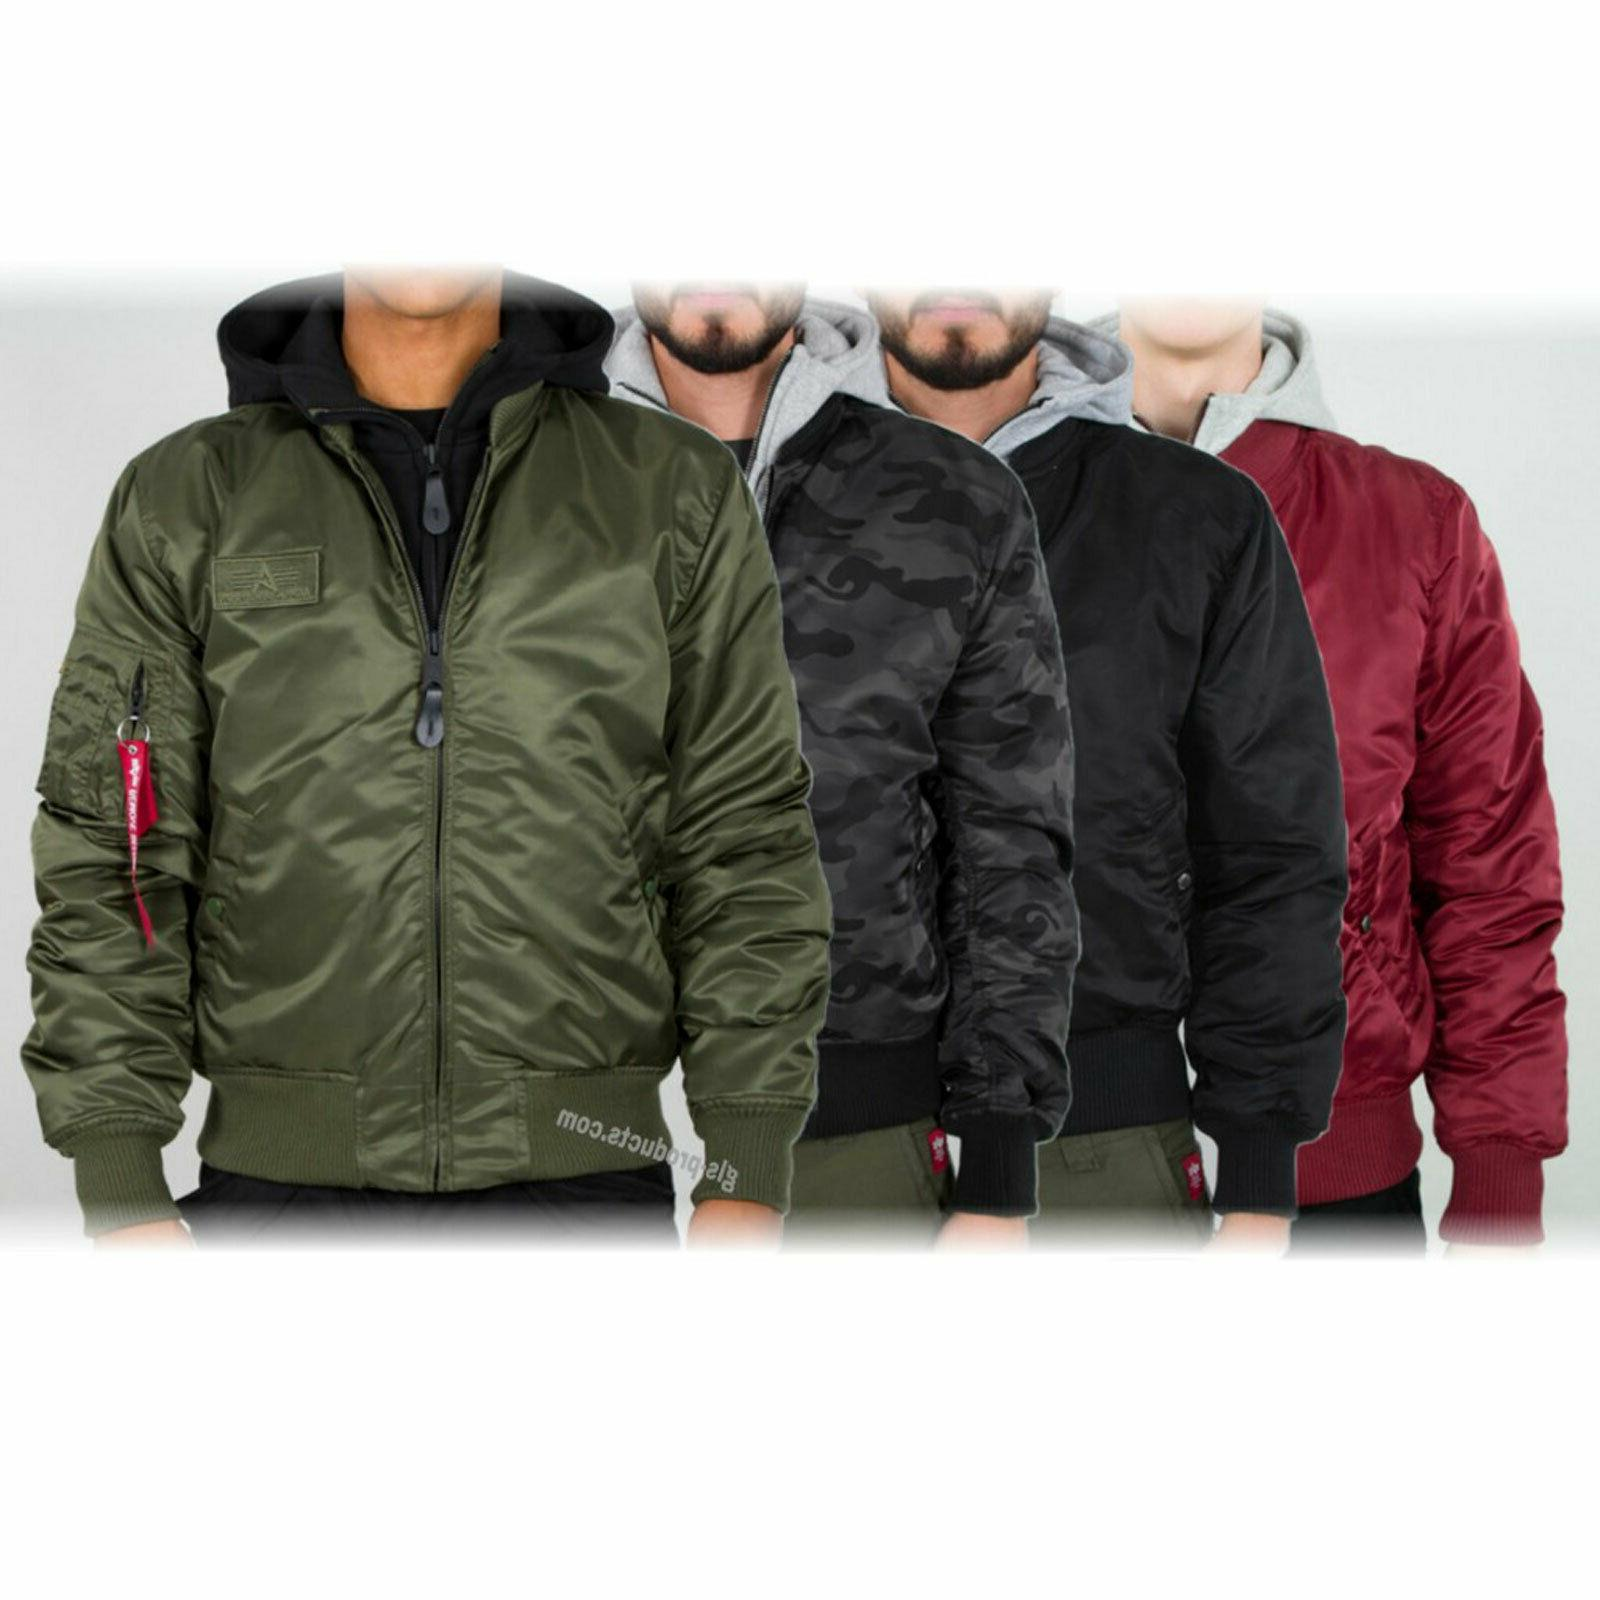 Alpha Industries MA-1 D-Tec New Bomber Jacket Detachable Hoo